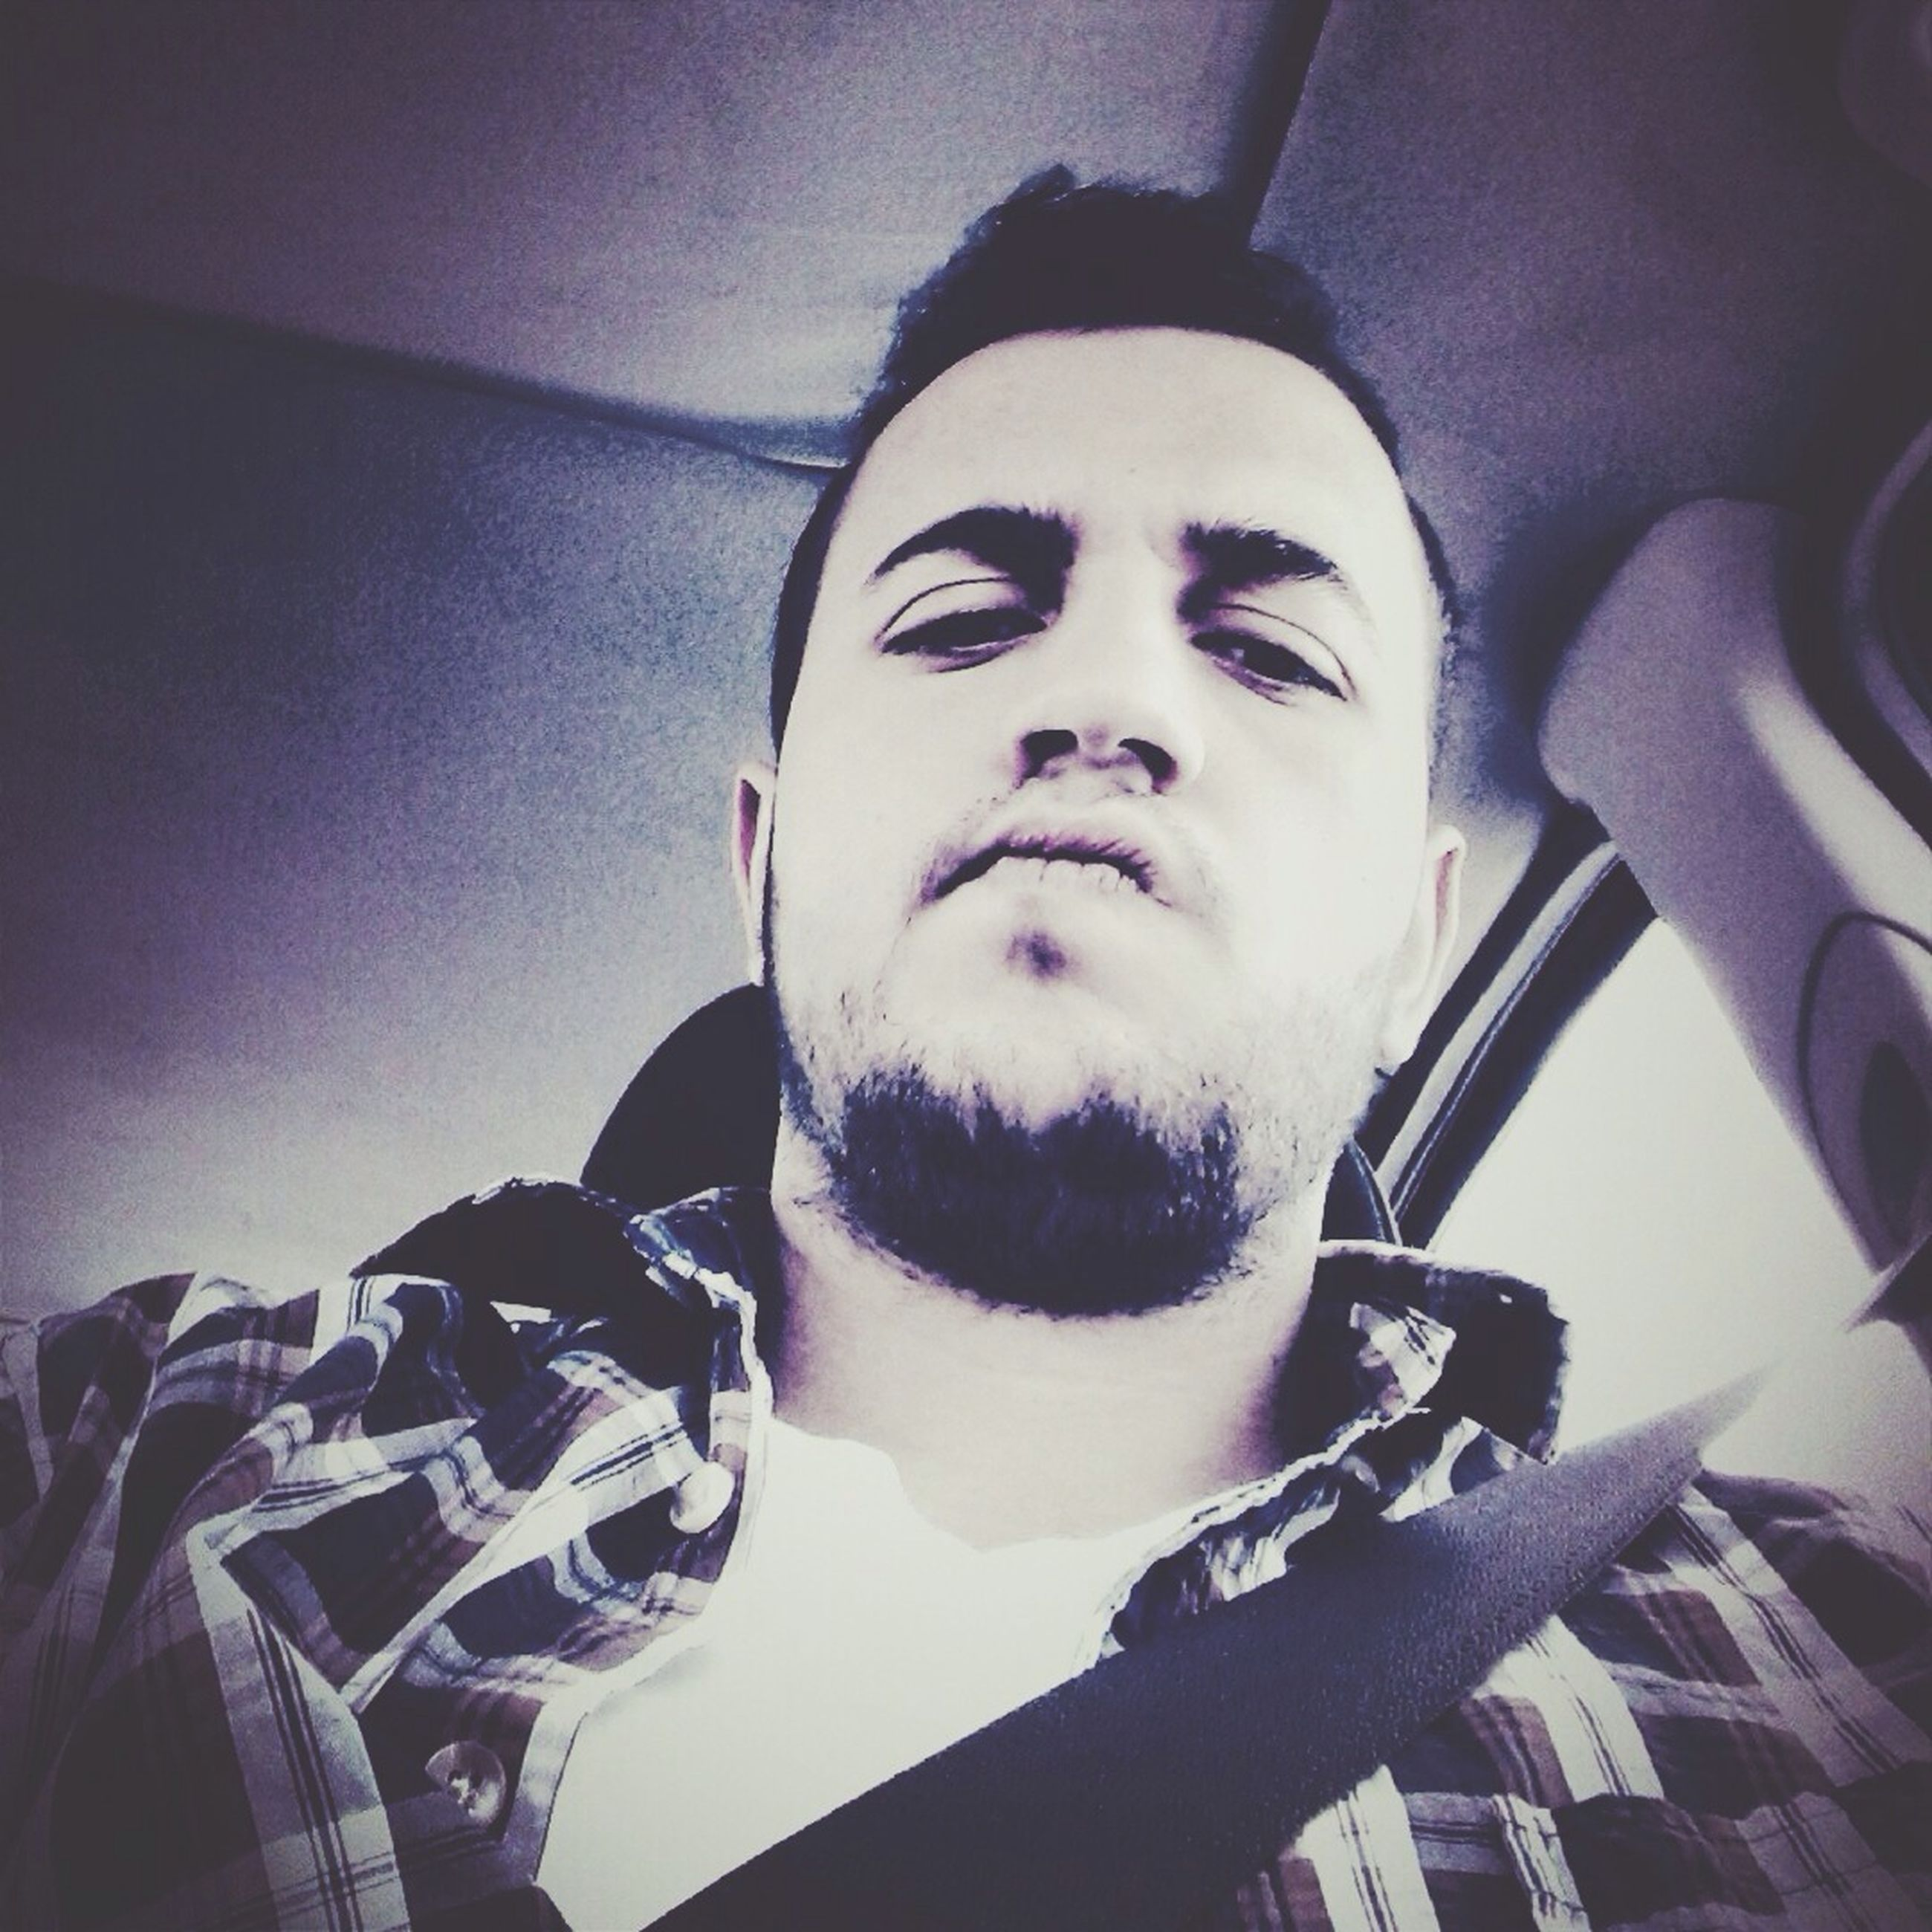 indoors, lifestyles, young adult, headshot, looking at camera, leisure activity, portrait, transportation, person, mode of transport, young men, car, beard, front view, close-up, land vehicle, head and shoulders, vehicle interior